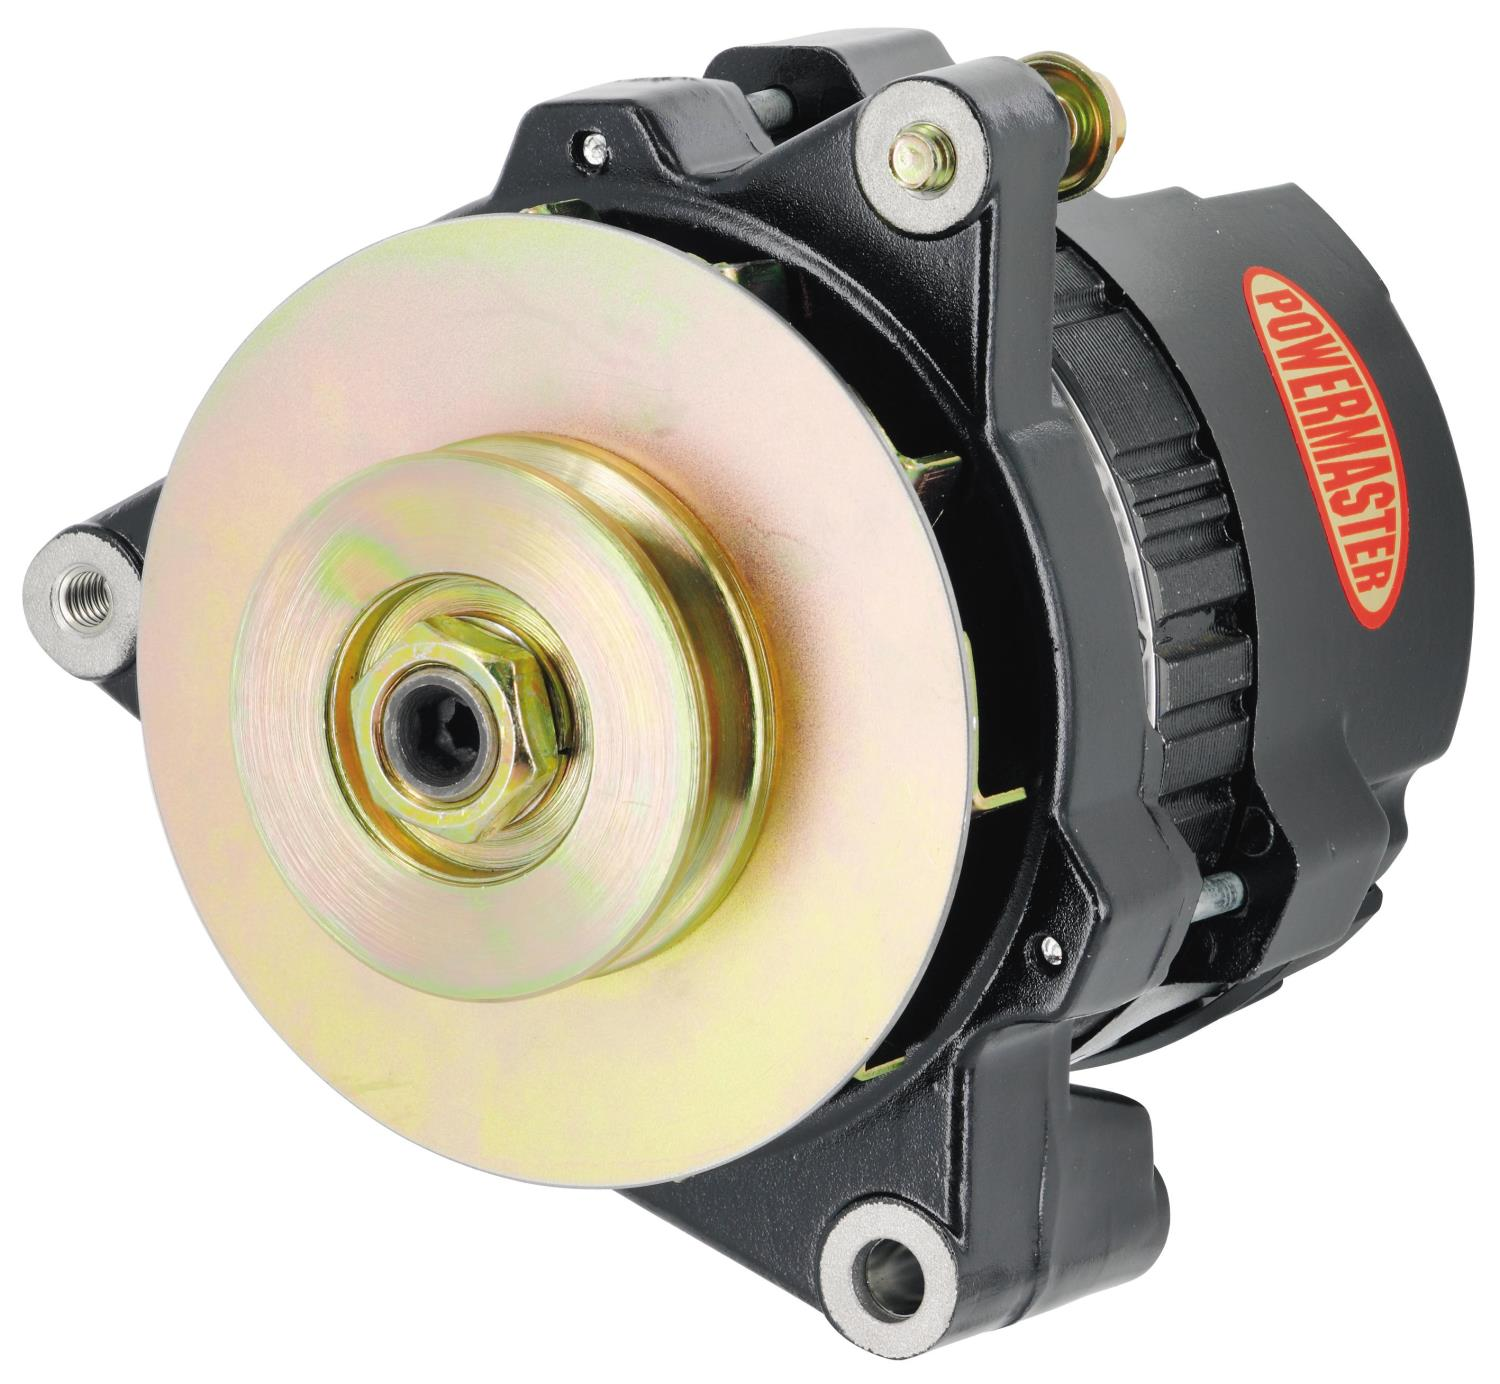 Powermaster 8478-104 - GM 5x5 Compact Race Alternators